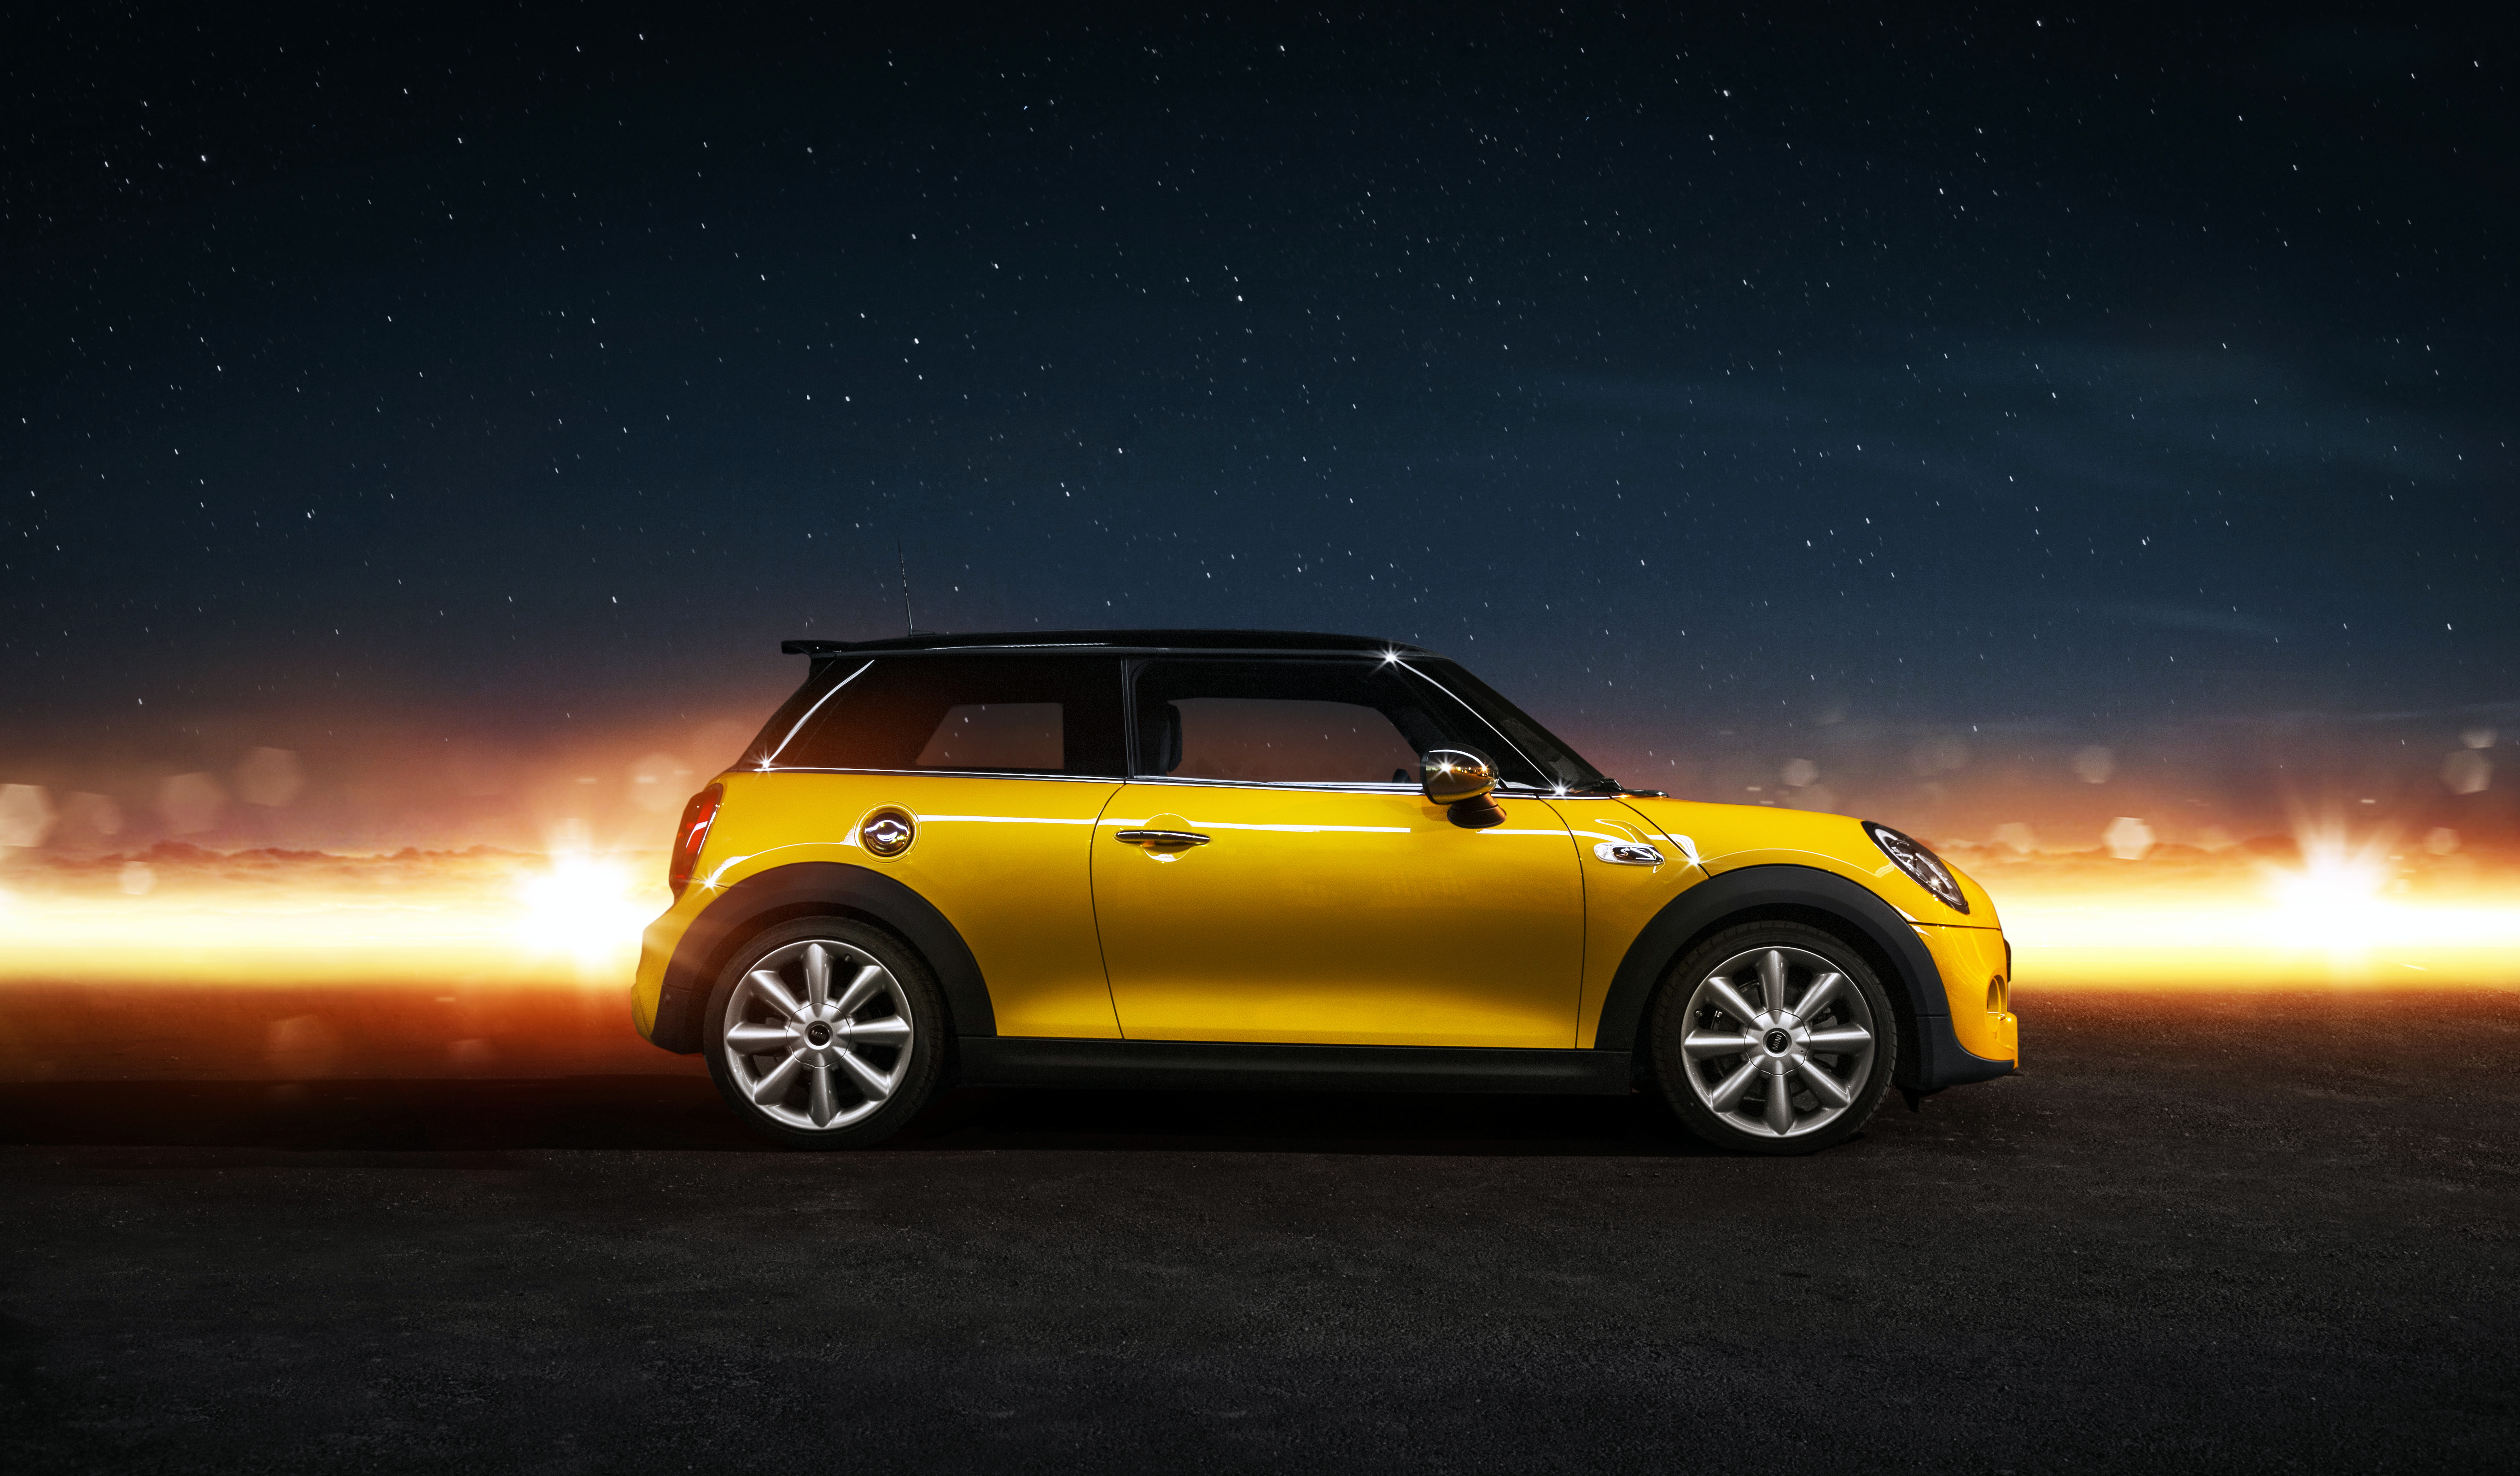 128008 download wallpaper Auto, Mini Cooper, Cars, Side View, Mini Cooper S screensavers and pictures for free